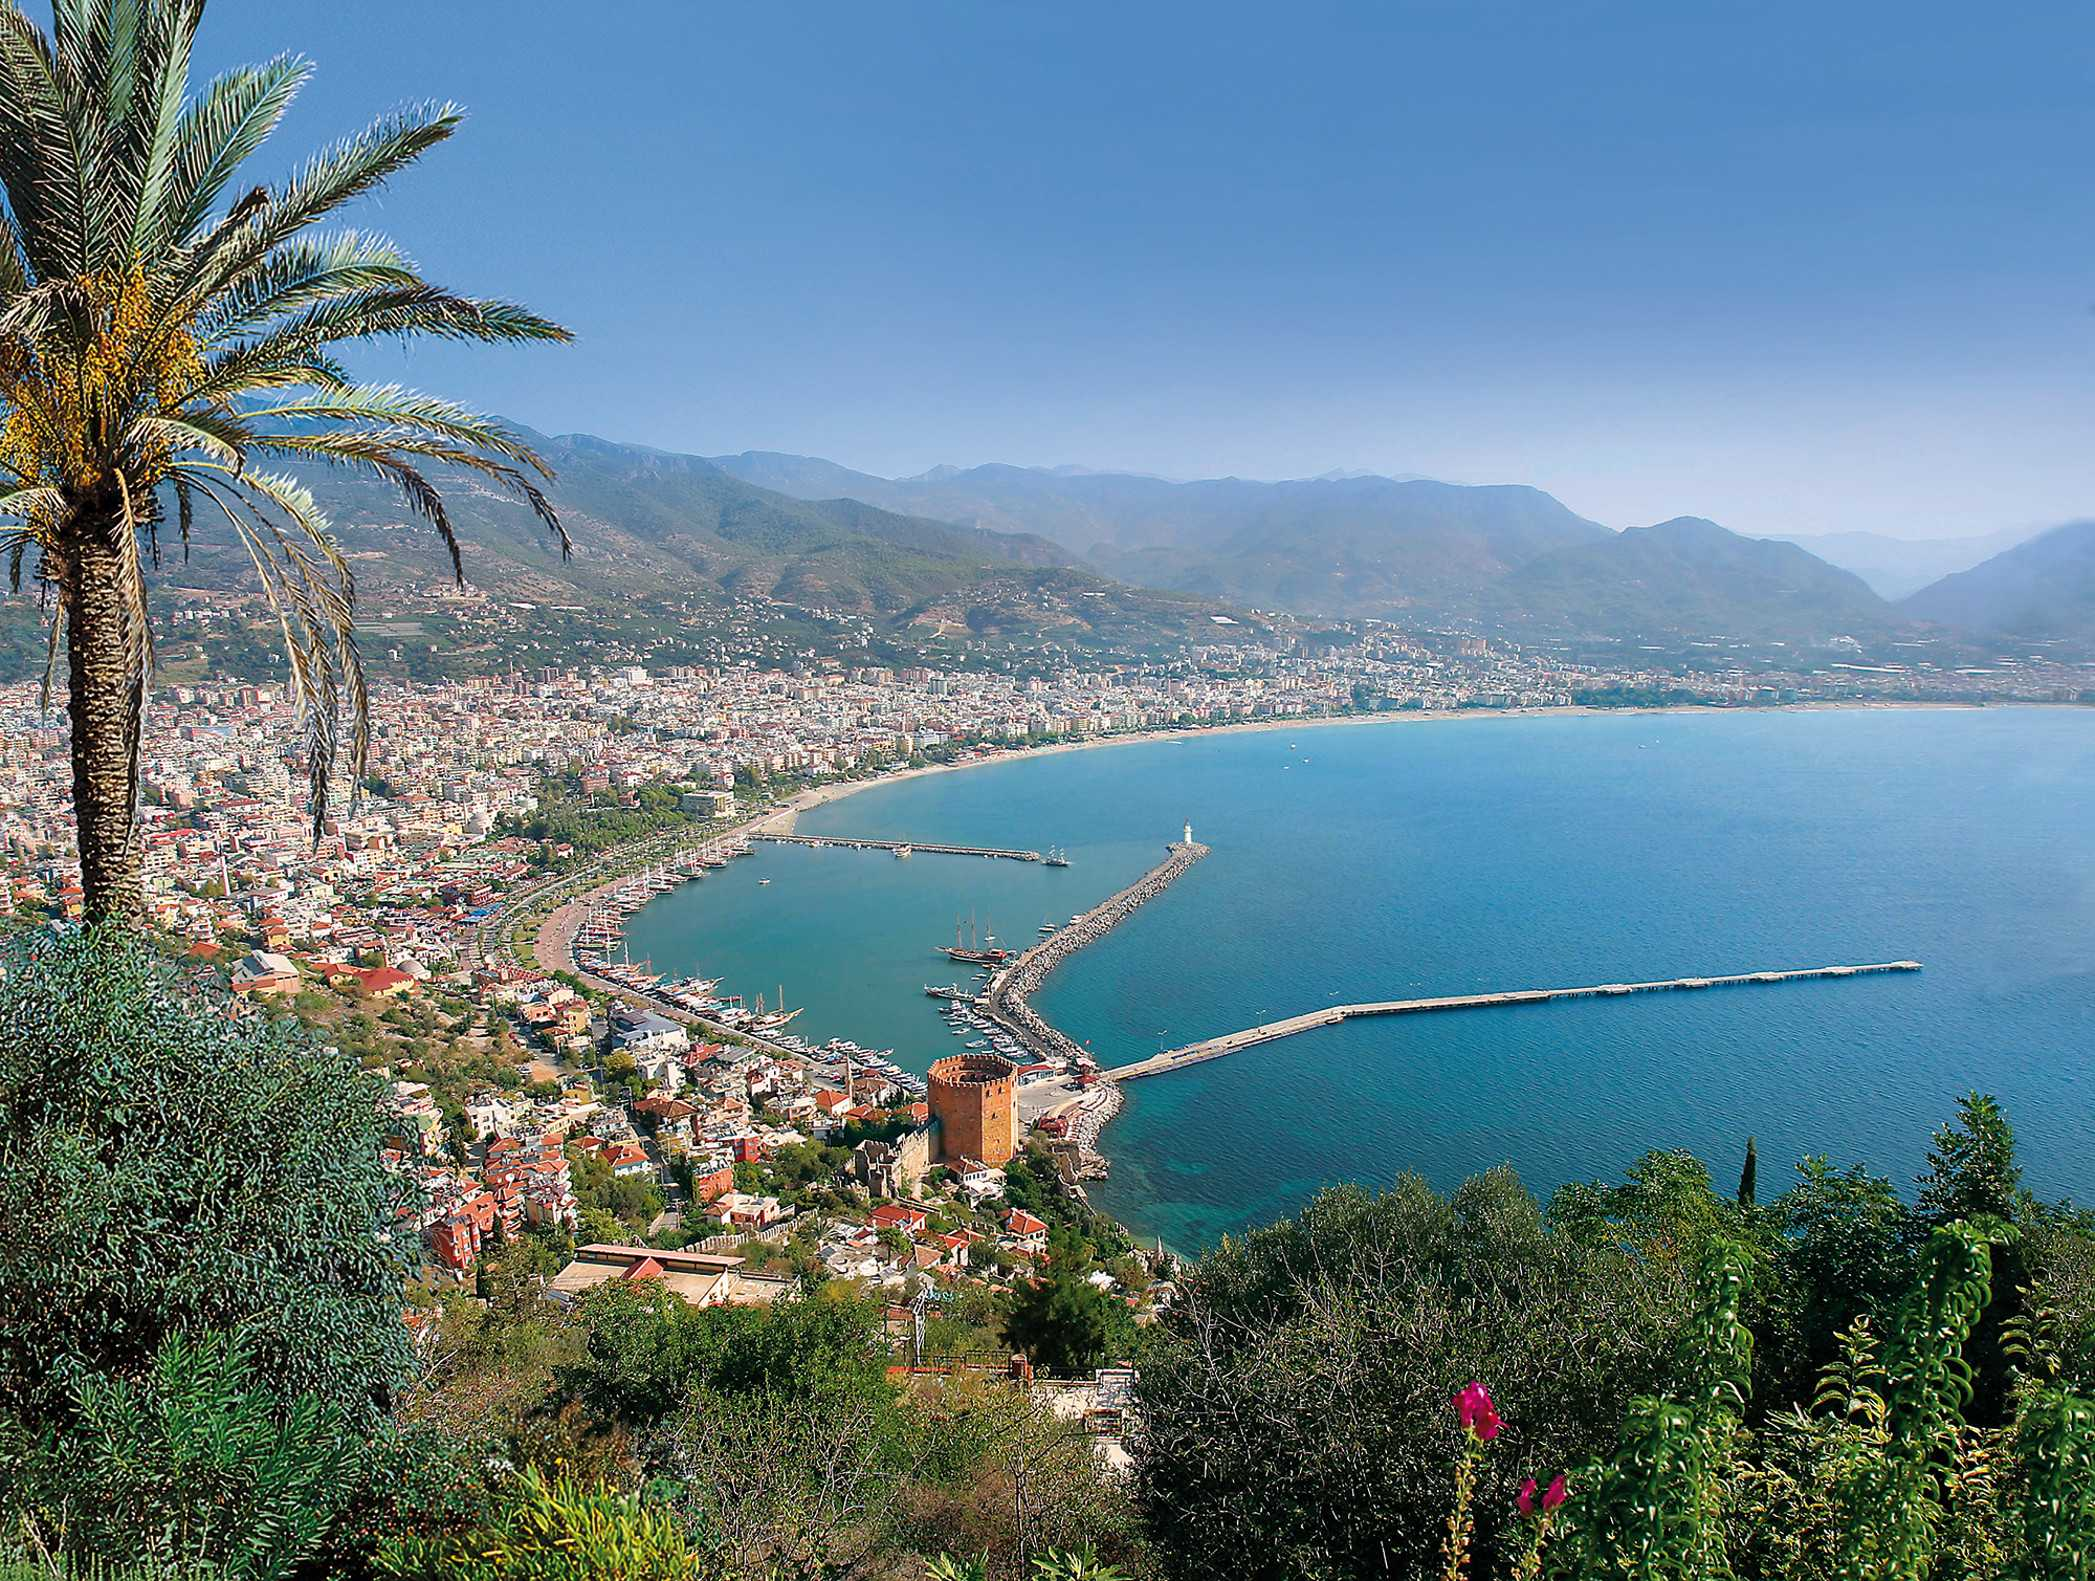 original_02_tr_st_alanya_cd_104